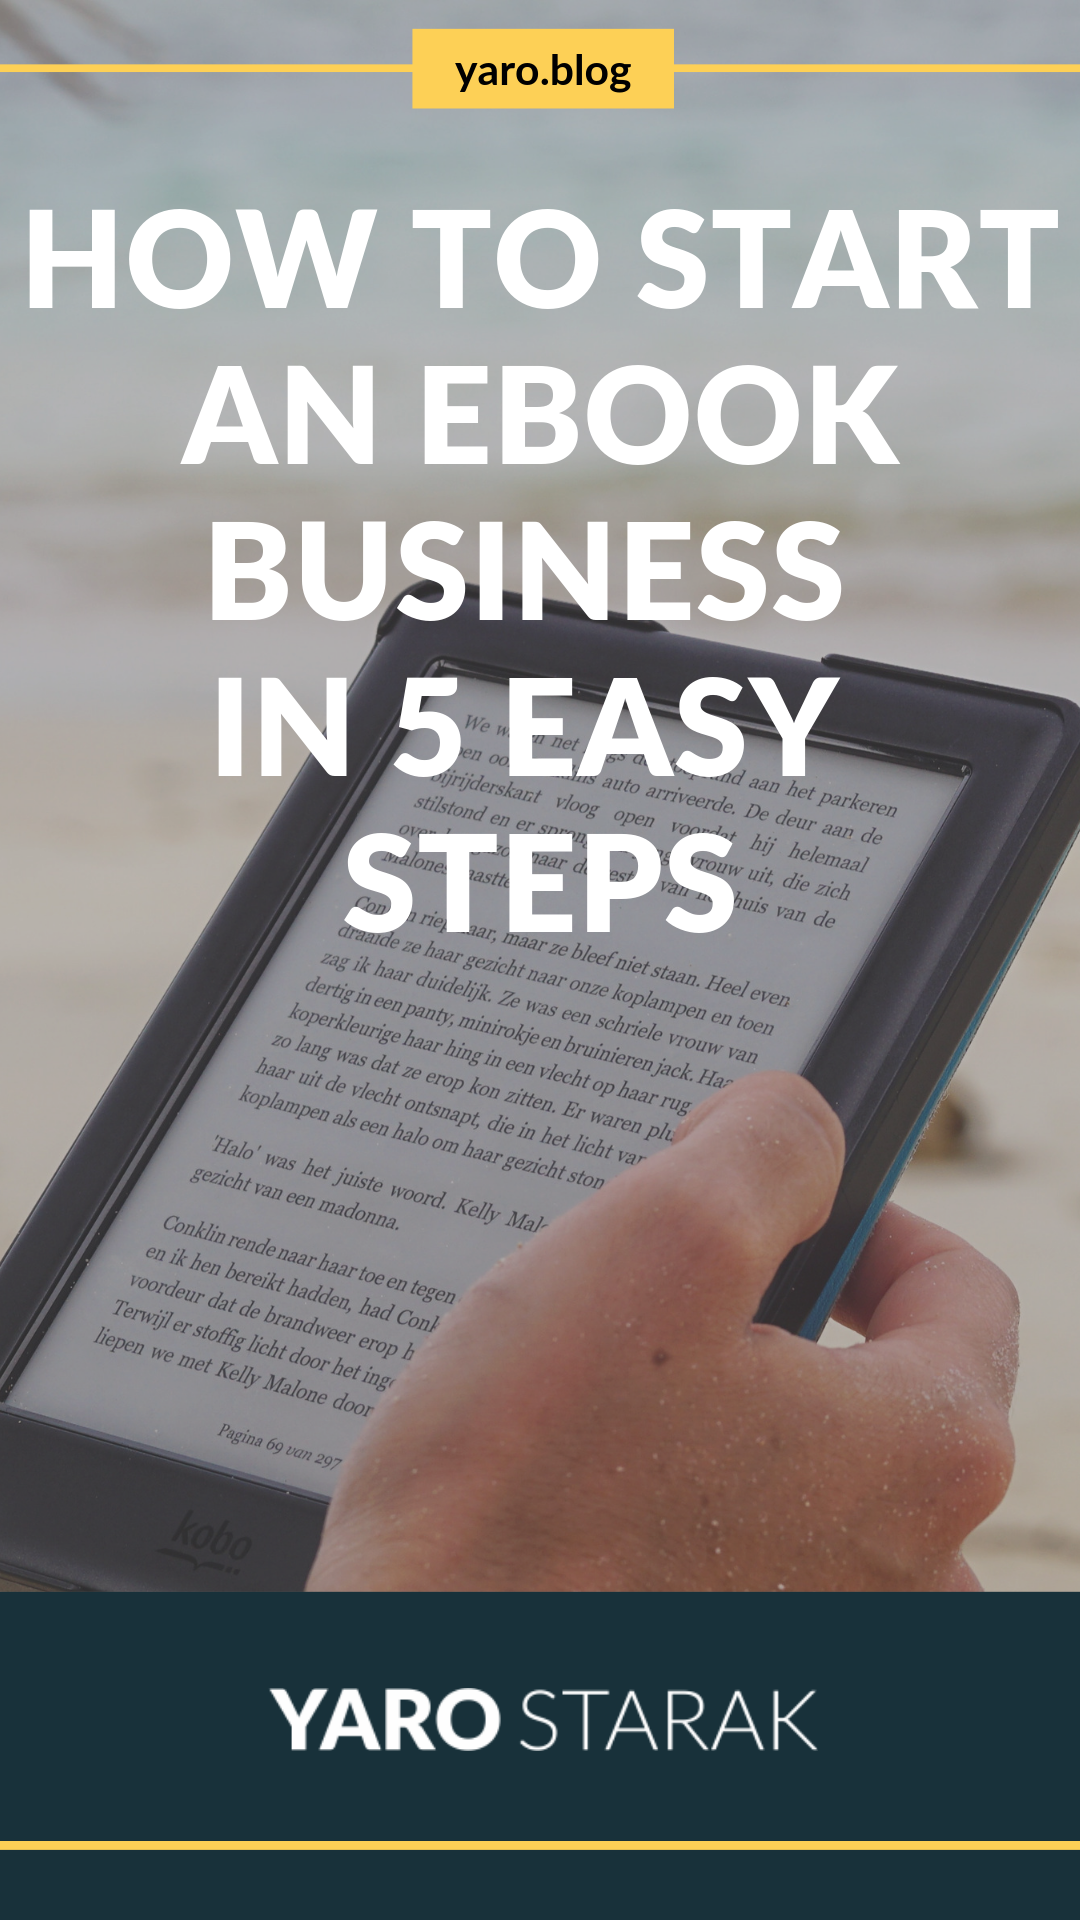 How To Start An eBook Business In 5 Easy Steps. Here's a